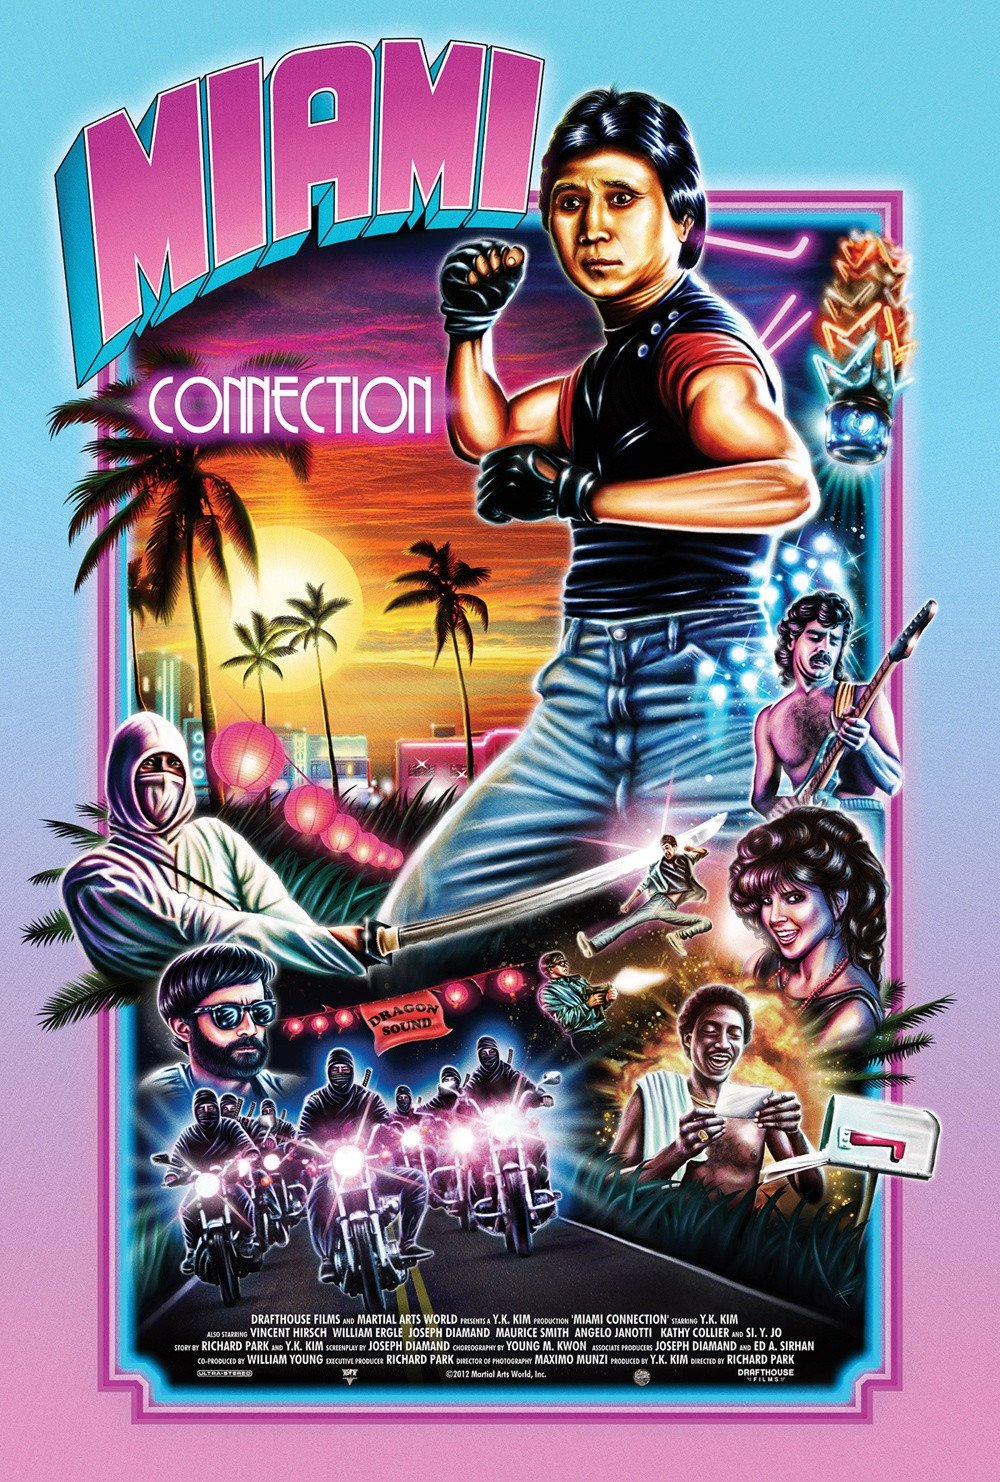 "Miami Connection - By Adam M. WilcoxWhat would a quintessential 80s film be comprised of? Rock and roll with a lot of keyboards, ninjas, cocaine, mullets, martial arts, cocaine, motorcycles, cocaine, a lot of gore, and did I forget to mention cocaine? Somewhere in Miami, in 1988 this film came out and was laughed out of the theater. In spite of that, Miami Connection is my spirit animal.For me to poke any fun at this movie would be mean spirited and just wrong even by my standards. While this movie is definitely badly shot, badly acted, and heavy on laughs, it is very clear that this movie though misguided, does come from a place of love. It has a lot of heart. Tae Kwon Do expert Y.K. Kim believed in this movie so much he put mortgaged his martial arts studio, his house, borrowed every last nickel he could to make it. Unfortunately it wouldn't find its audience until 2012 when Austin TX's Alamo Draft House pulled this album out of mothballs. The film was so well received that the Draft House gave it a second release on digital streaming services, limited VHS, DVD, and Blu-Ray.The premise is pretty simple really, take all of your favorite parts of Eddie and The Cruisers, Enter the Ninja, and Miami Vice, and assemble a wicked action flick. A pack of motorcycle riding Ninjas (the Harley Davidson kind, not the sport bike kind) decide to ambush a coke deal, and steal the coke ""somewhere in Miami"" that's the actual caption on the establishing shot. Later the biker ninjas go to a club where ""The Dragon Sound"" is playing. The Dragon Sound is the most goodie two shows bunch of Tae Kwon Do black belt pop music playing dudes you will ever see. One of the brothers of the biker ninjas is pissed off because his sister is in the band. Eventually this brother's anger gets the band and the ninjas into a war with each other. The rest of the movie is over the top martial arts, bad acting, full length songs by the band faking the music playing very badly, limbs being sliced off with blood squirting out, shirtless dudes feeding each other grapes, a guy that looks like he got kicked out of Hall & Oates, some insanely bad accents, some really over the top bad acting. Honestly to the movie's credit, the action is really good! I mean it is fucking great! Obviously the movie was shot on a budget, but I am always super impressed at how many extras are in this movie. The fights are always spectacular, and the effects are the good kind of practical blood and guts effects that we took for granted in the 80s. Not to mention the synth scores that are trying to emulate the works of the famous Michael Mann TV show, does a pretty good job of being catchy and trendy. Speaking of trendy, I guarantee that at least one of the stupid songs ""performed"" by The Dragon Sound will be stuck in your head for weeks. For me it's ""Friends Through Eternity"". This movie is a laugh a minute and it makes me so happy every time I watch it, that it is my new favorite film to watch when I am having a bad day, and I need something to make me happy again. For a really good time, go to YouTube and type in: ""Dragon Sound: Friends Through Eternity"" and watch the full length video that is actually a part of the film, or just type in ""Miami Connection"", and watch the official 2012 trailer. To quote the film ""Only through the absence of violence can we achieve peace"", well only through laughter at watching Miami Connection will you achieve nirvana? This movie gets nothing lower than 5 out of 5 cheese curds; it's an instant classic, a crowd pleaser, totally worth skipping the rental and going straight to Blu-ray, I cannot say enough good things about it. If you have Amazon Prime, you can watch this one for free with, or without the RiffTrax commentary. Either one works. If you have Vudu, you can also currently watch this one free with ads."